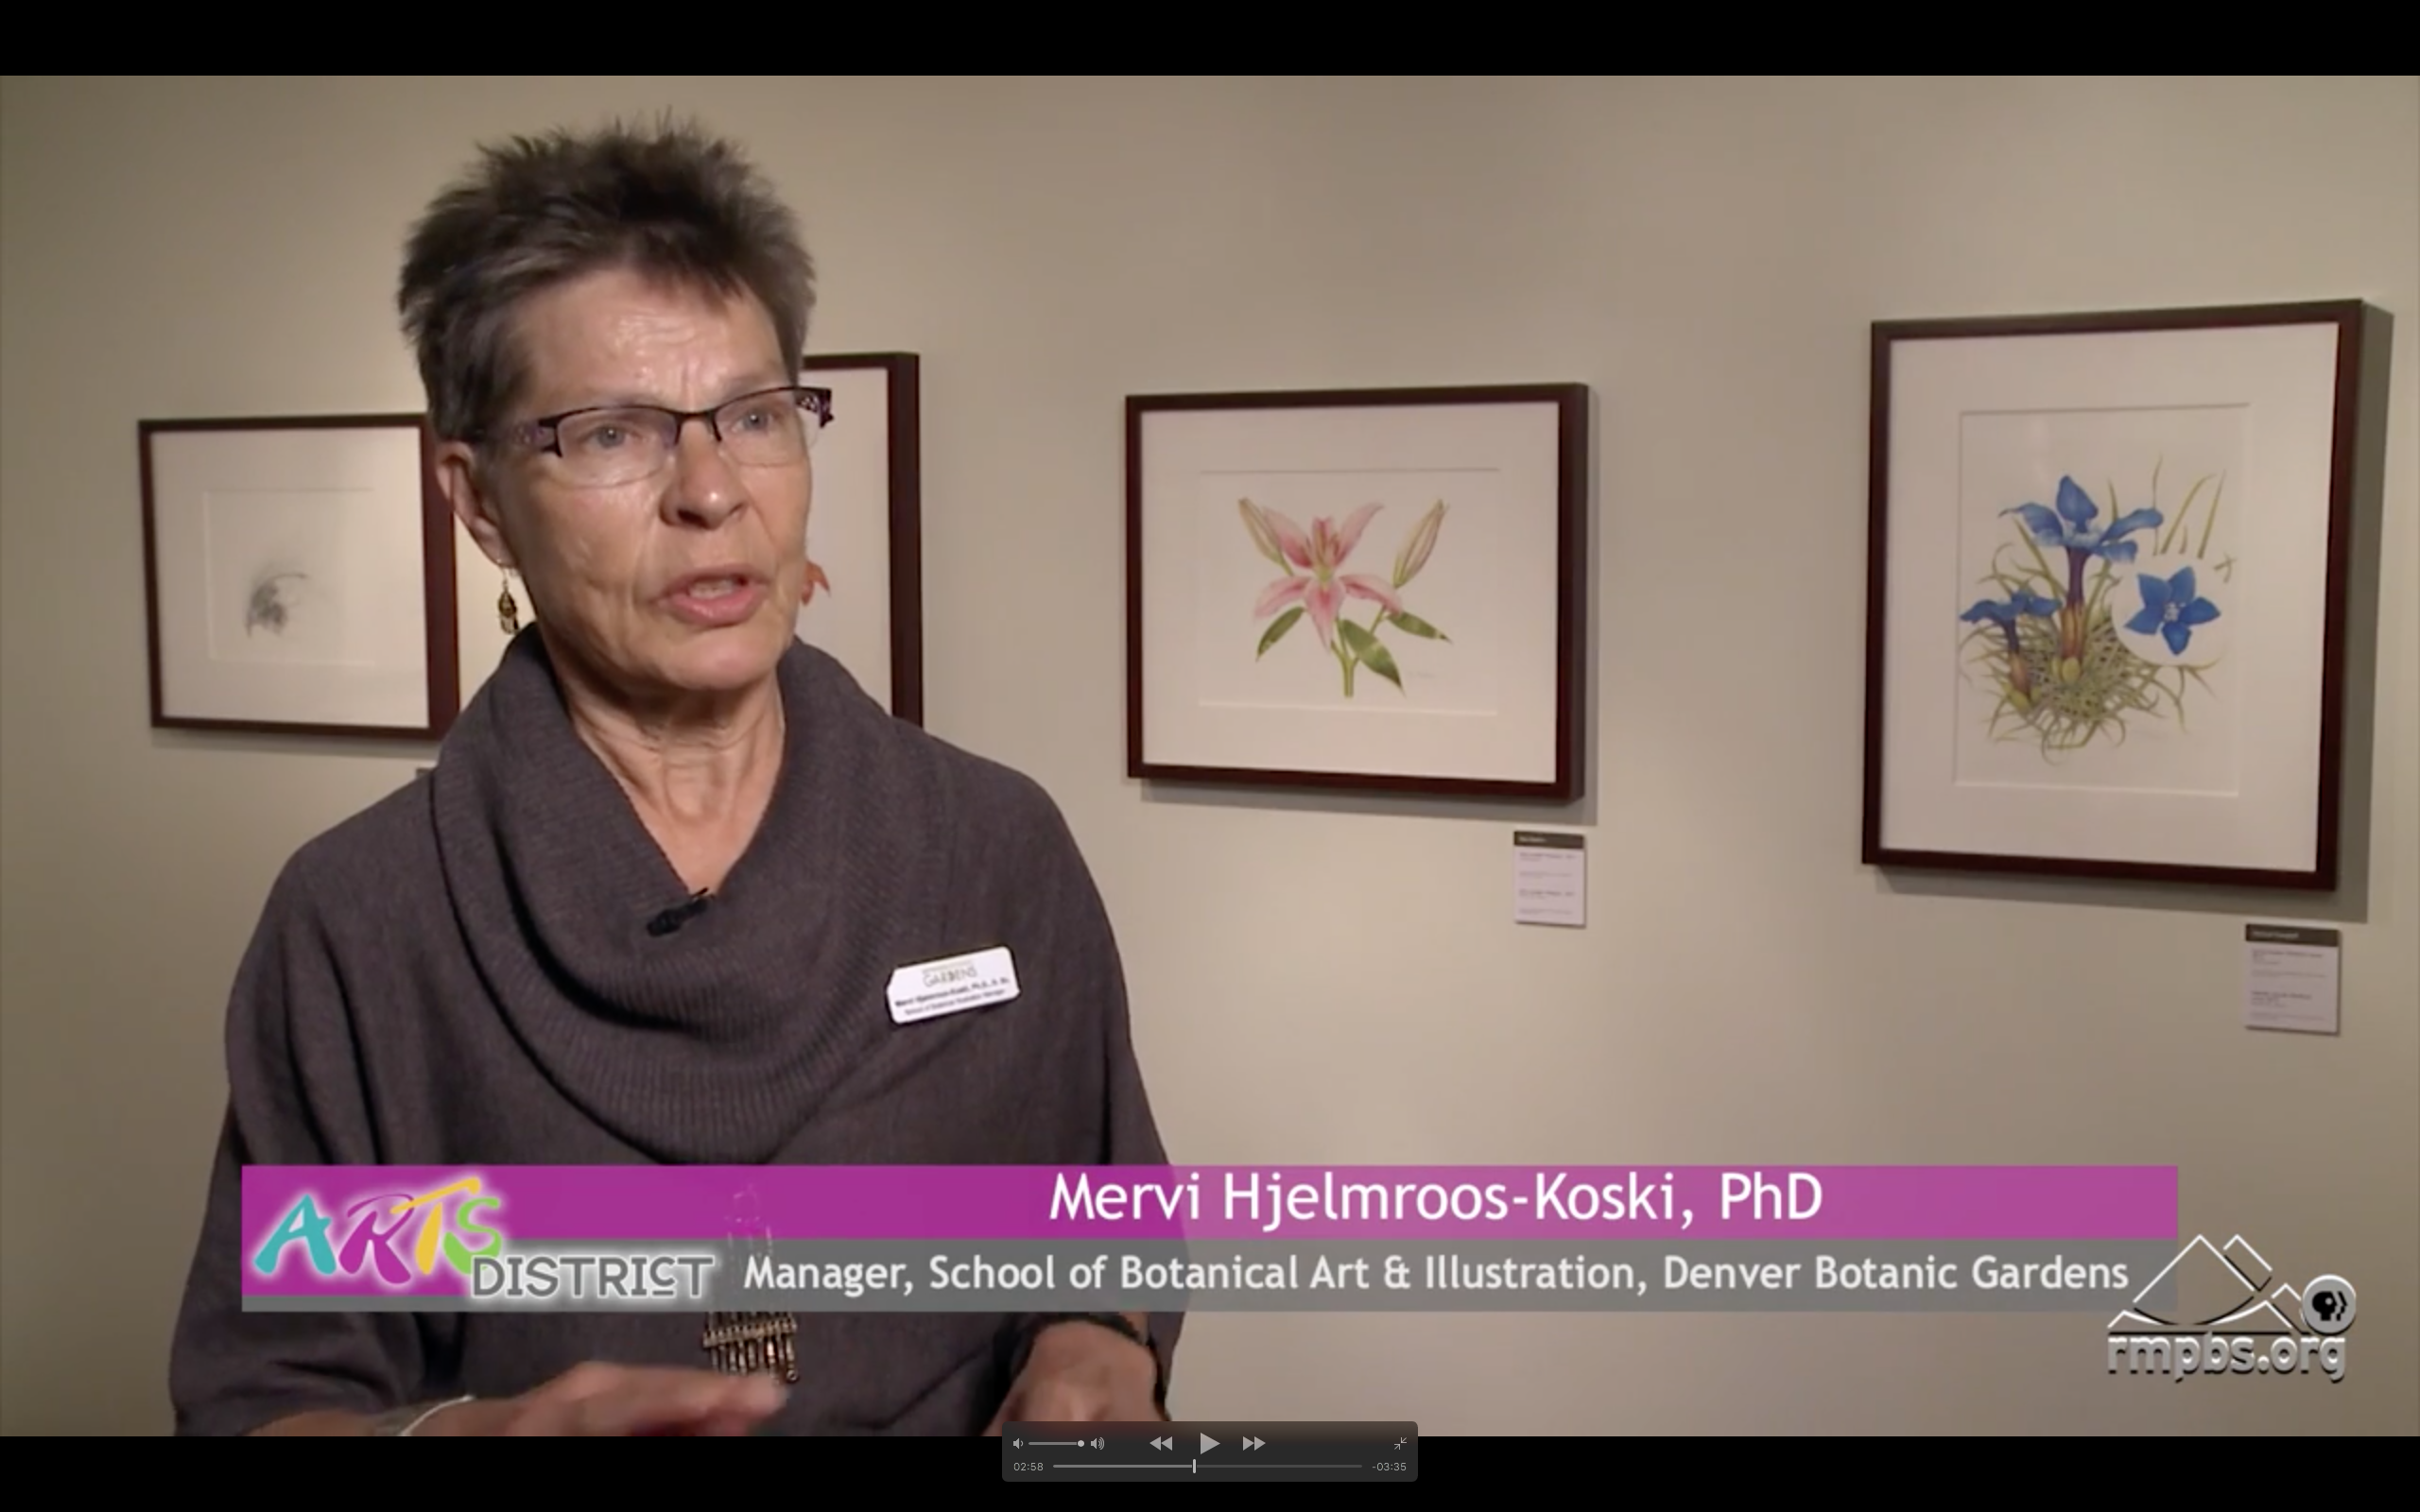 Mervi Hjelmroos-Koski, director of the School of Botanical Art and Illustration